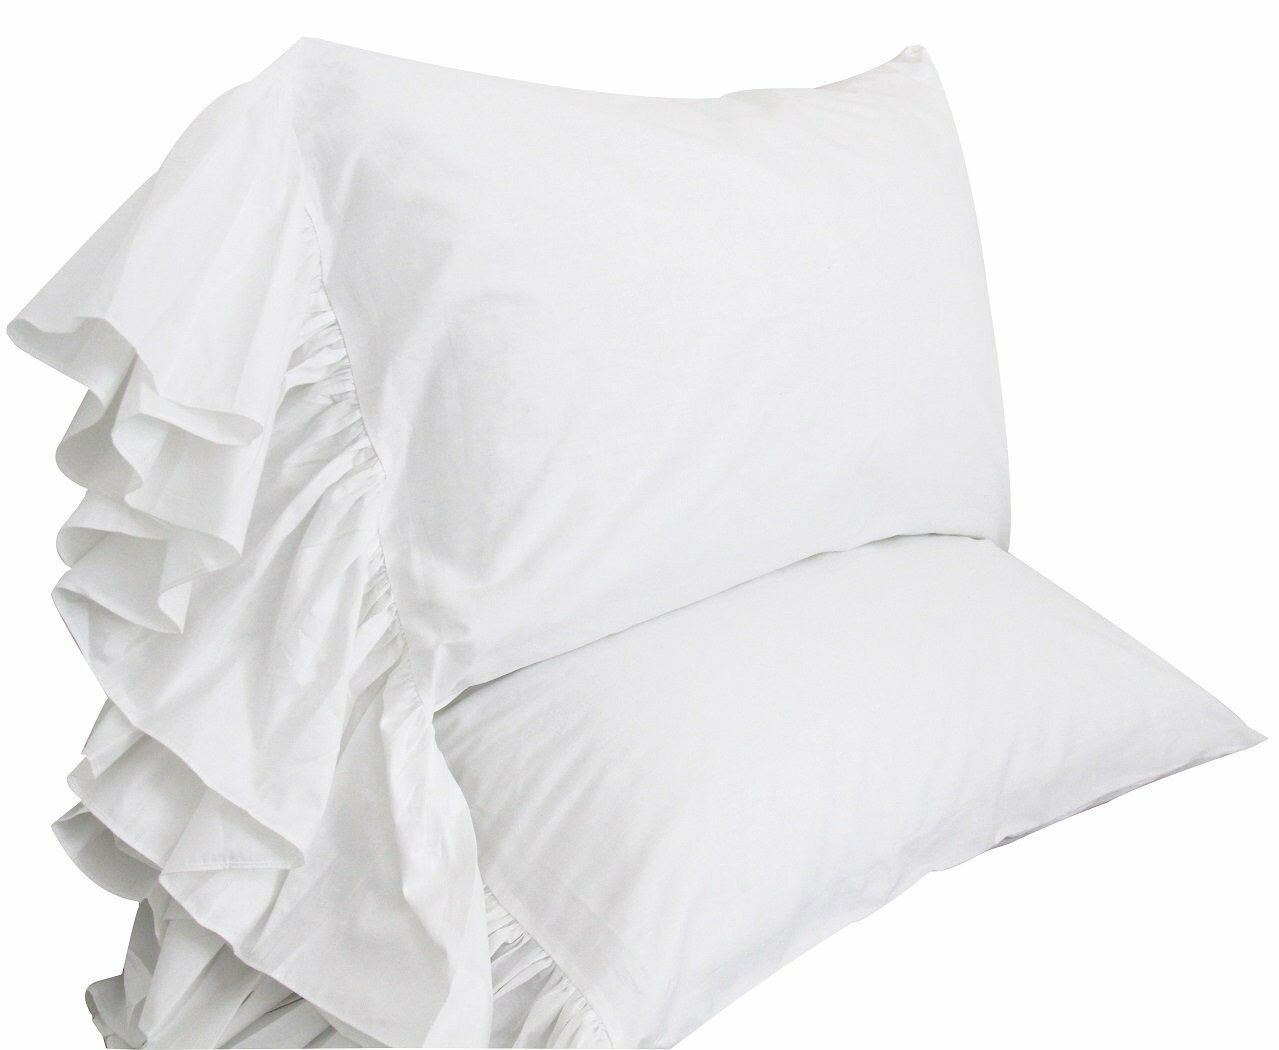 Queen's House White Ruffles Bed Sheets Set Cotton Queen Size Sheets-Style G